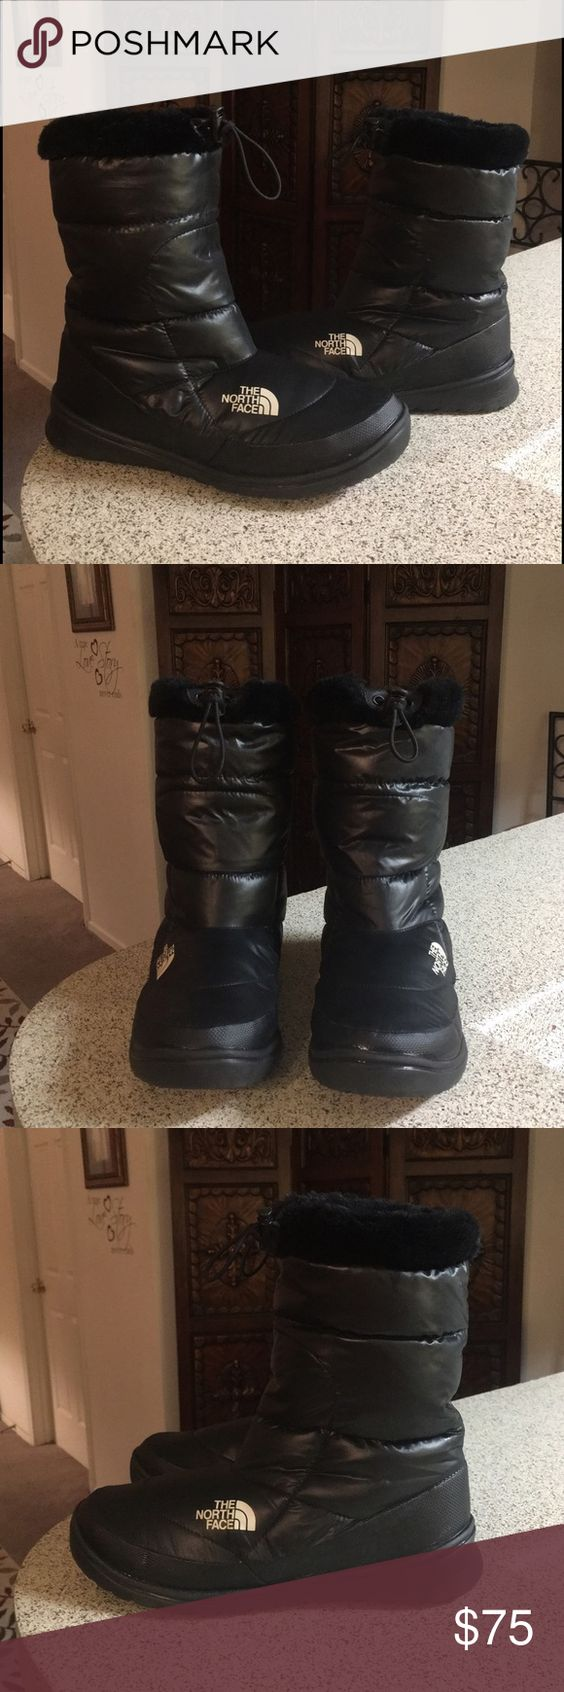 The North Face Nuptse Down Winter Boots Sz 9 These boots are gently used and still in great condition The North Face Shoes Winter & Rain Boots